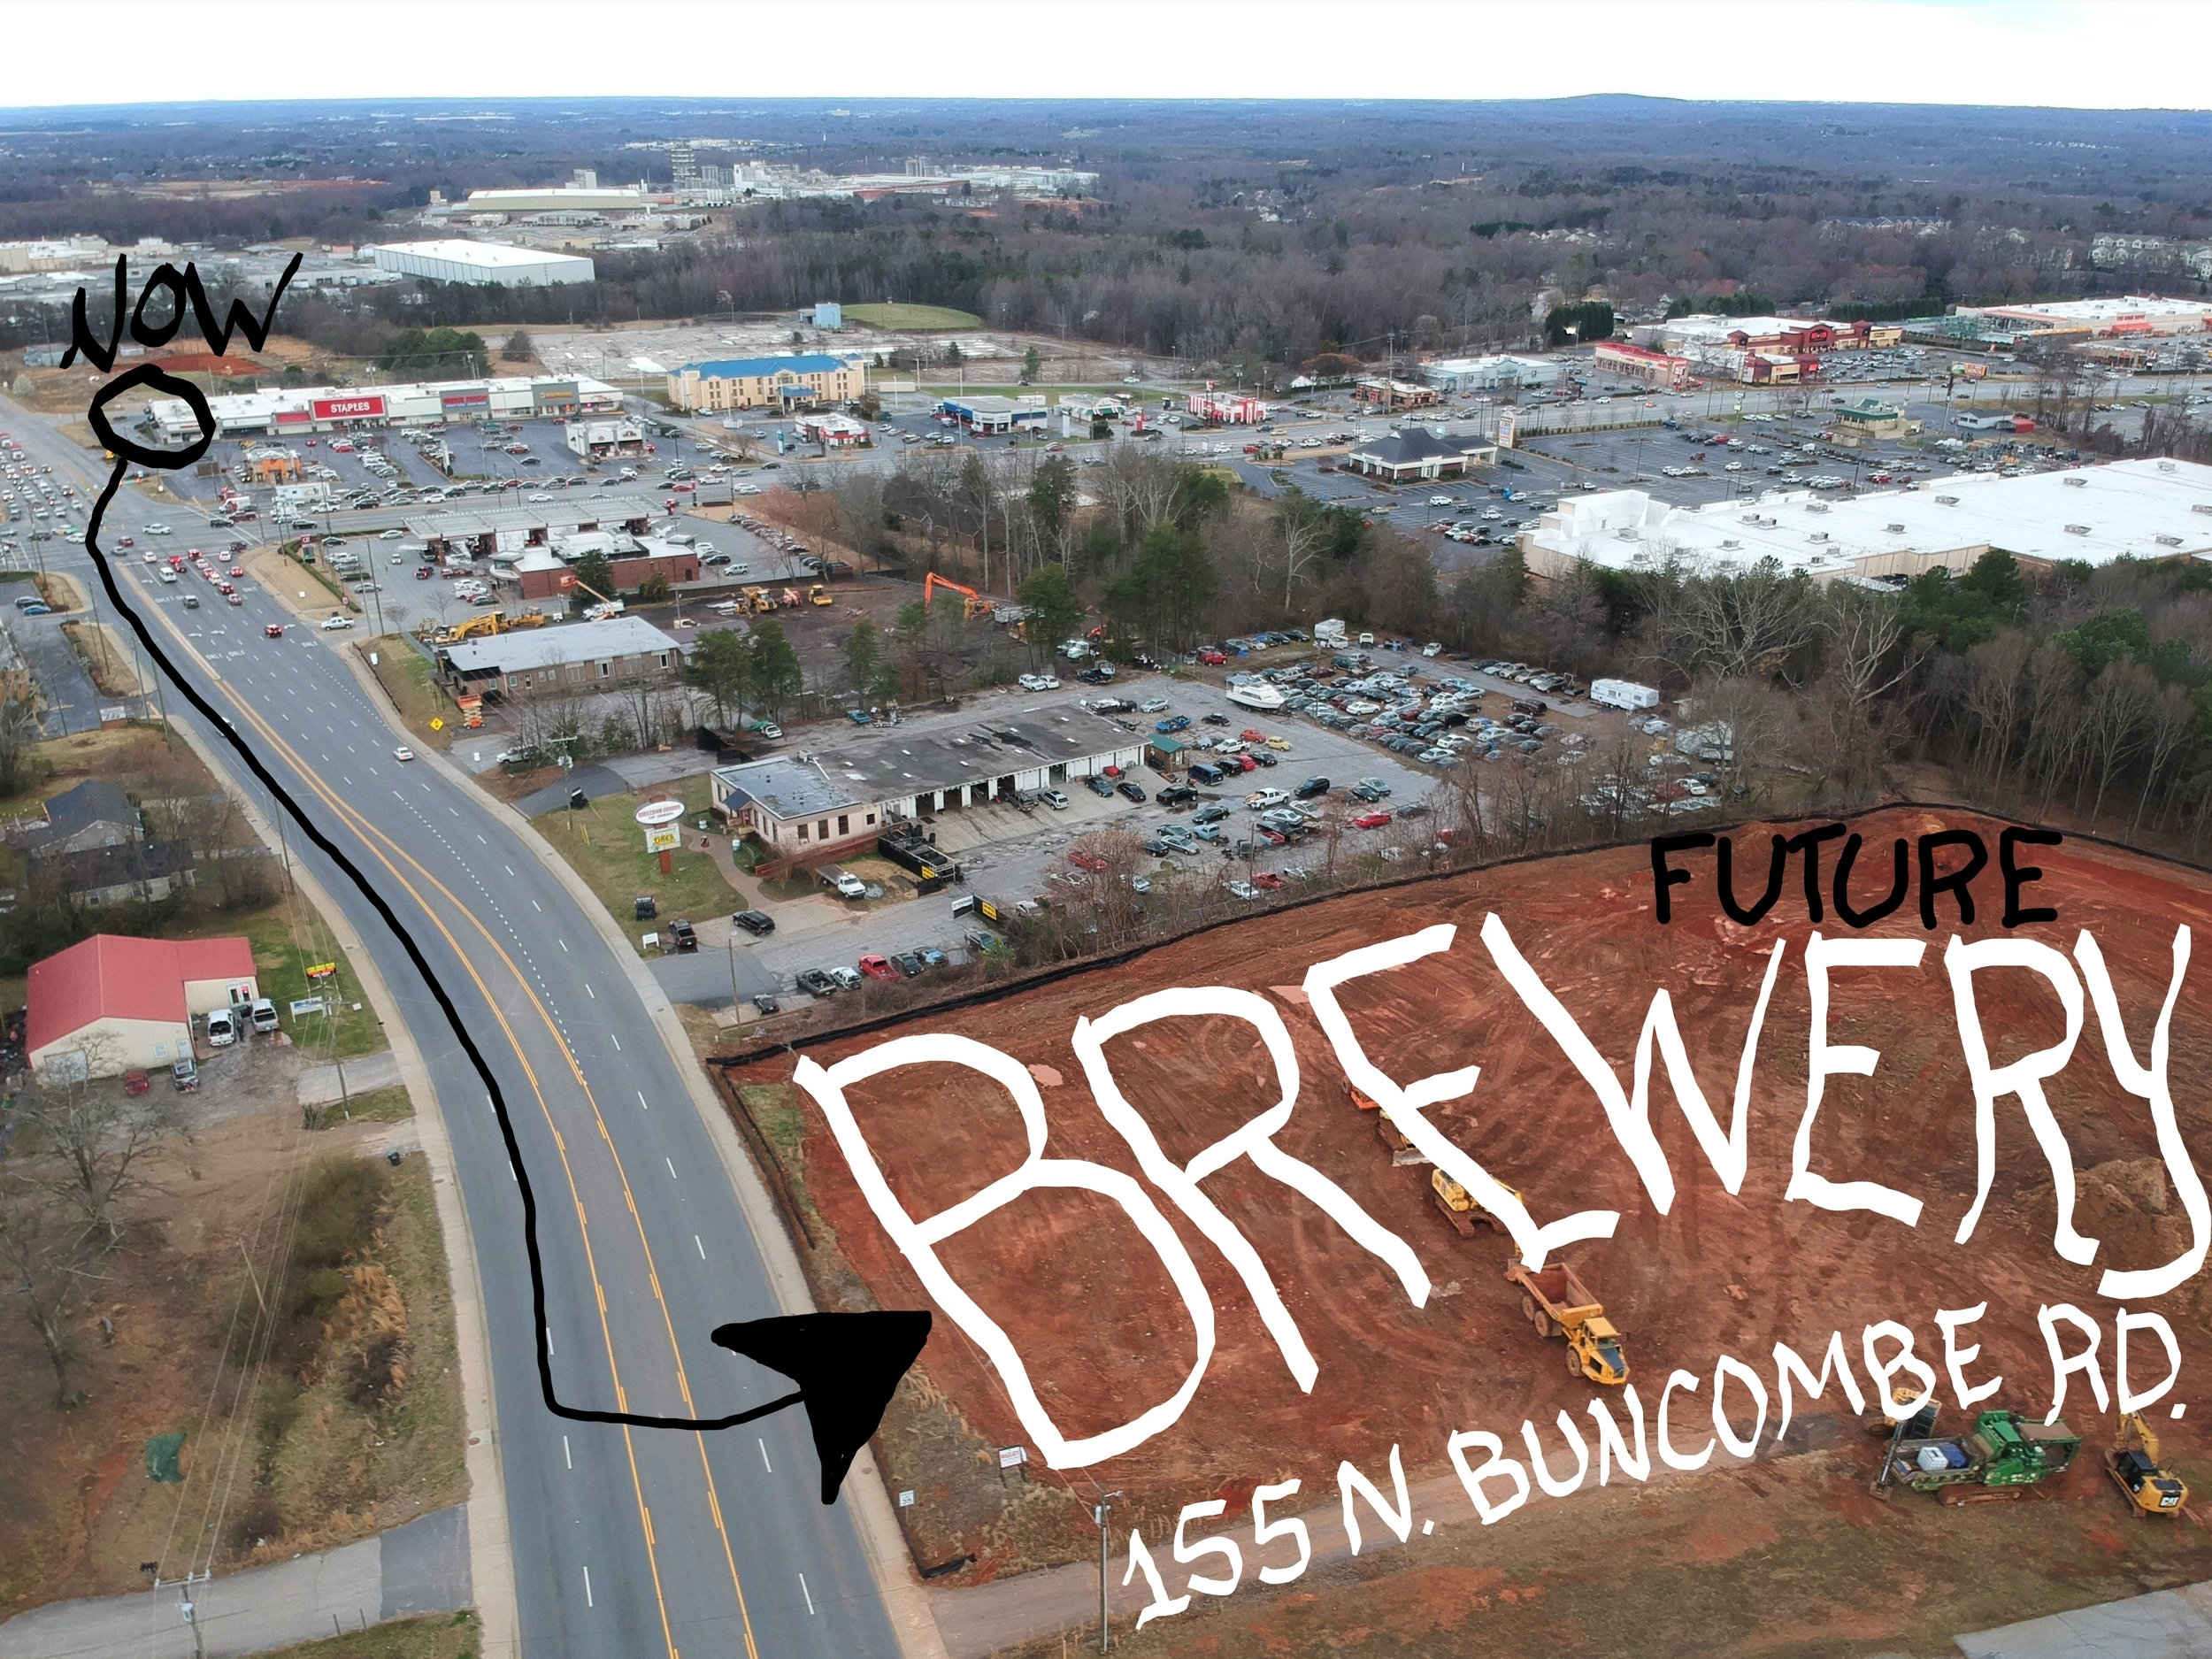 Brewery Aerial Ad Address.jpg